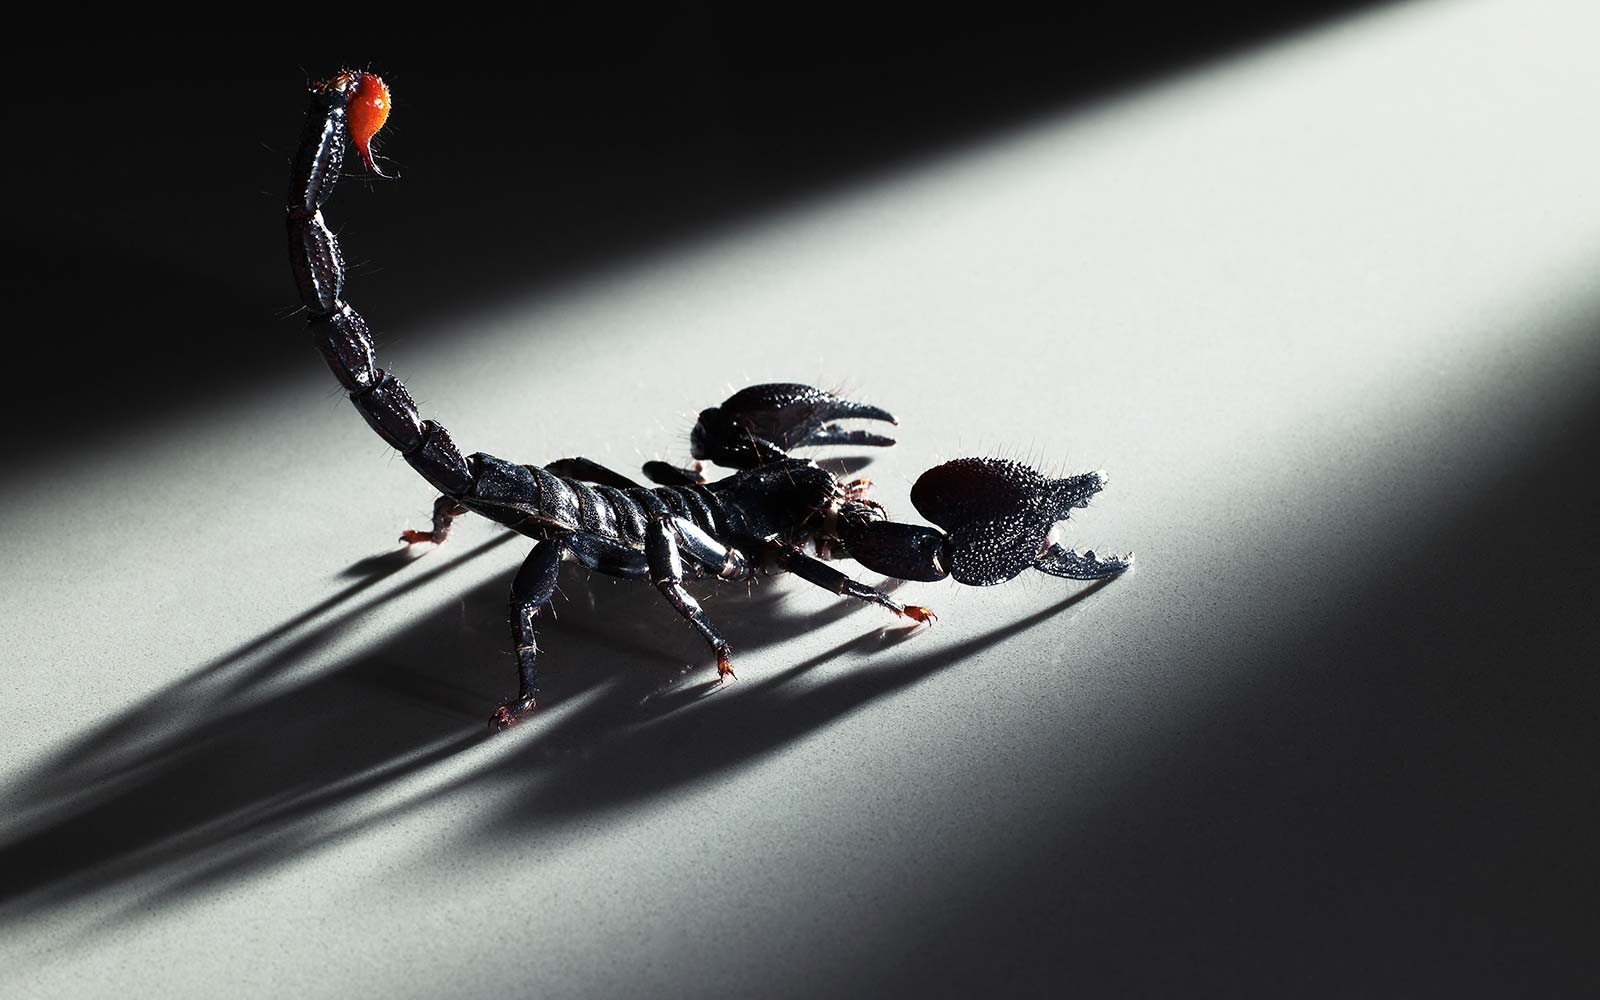 Scorpion stings passenger on flight — again